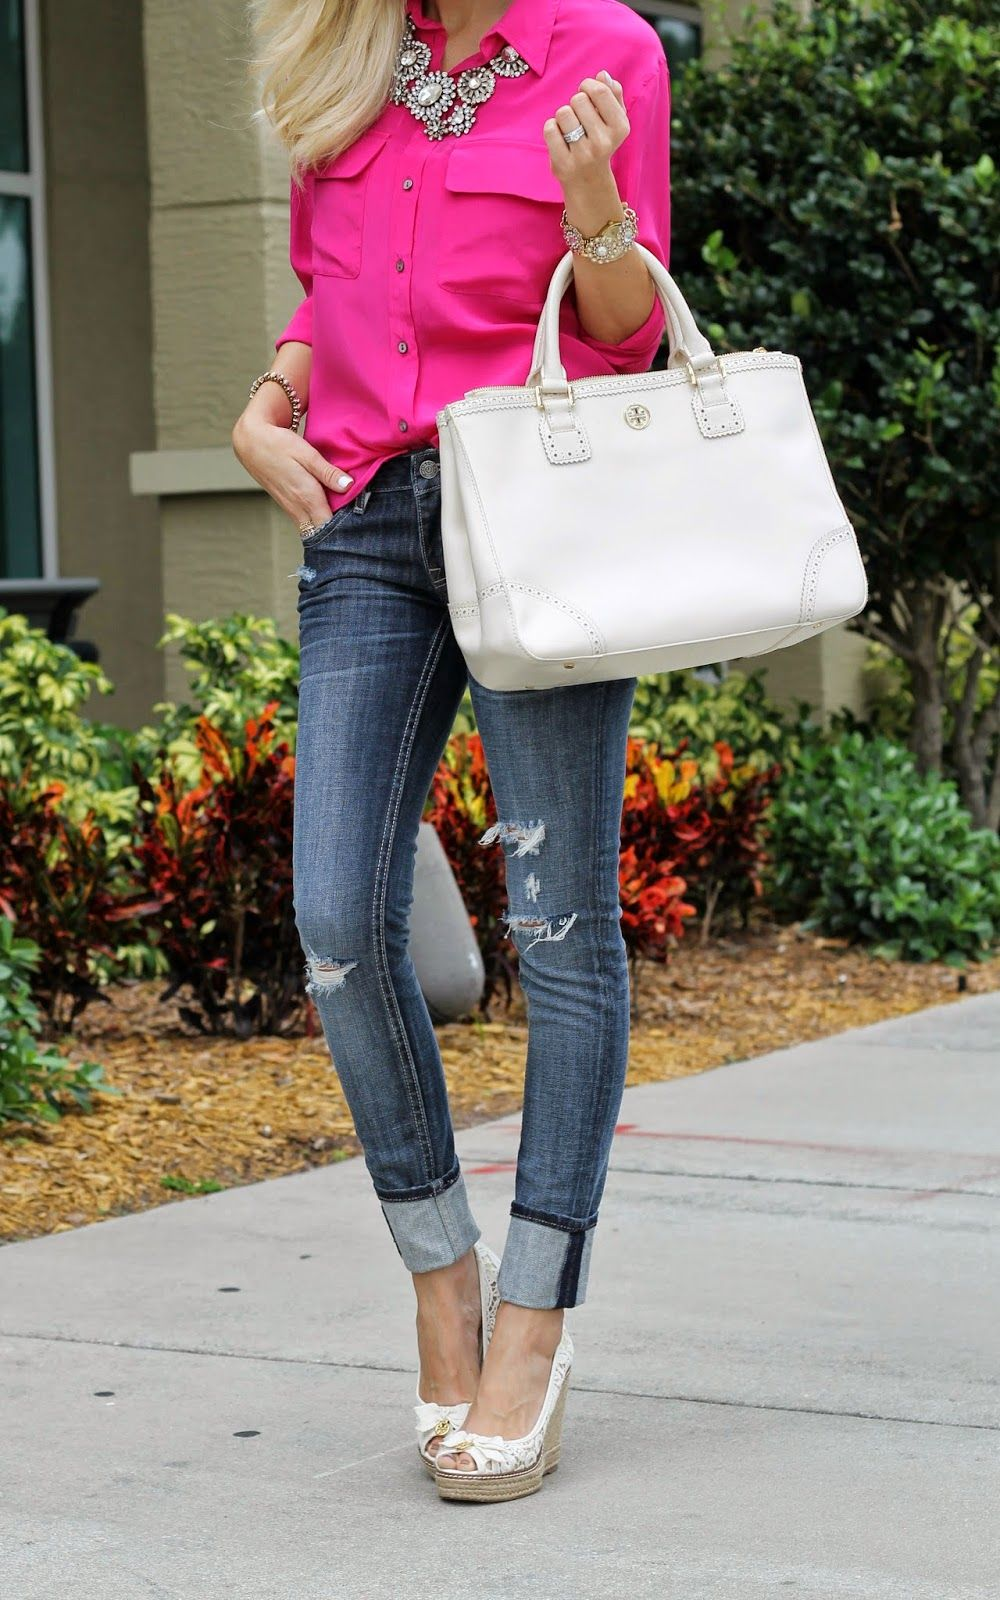 How To Style Hot Pink Blouse